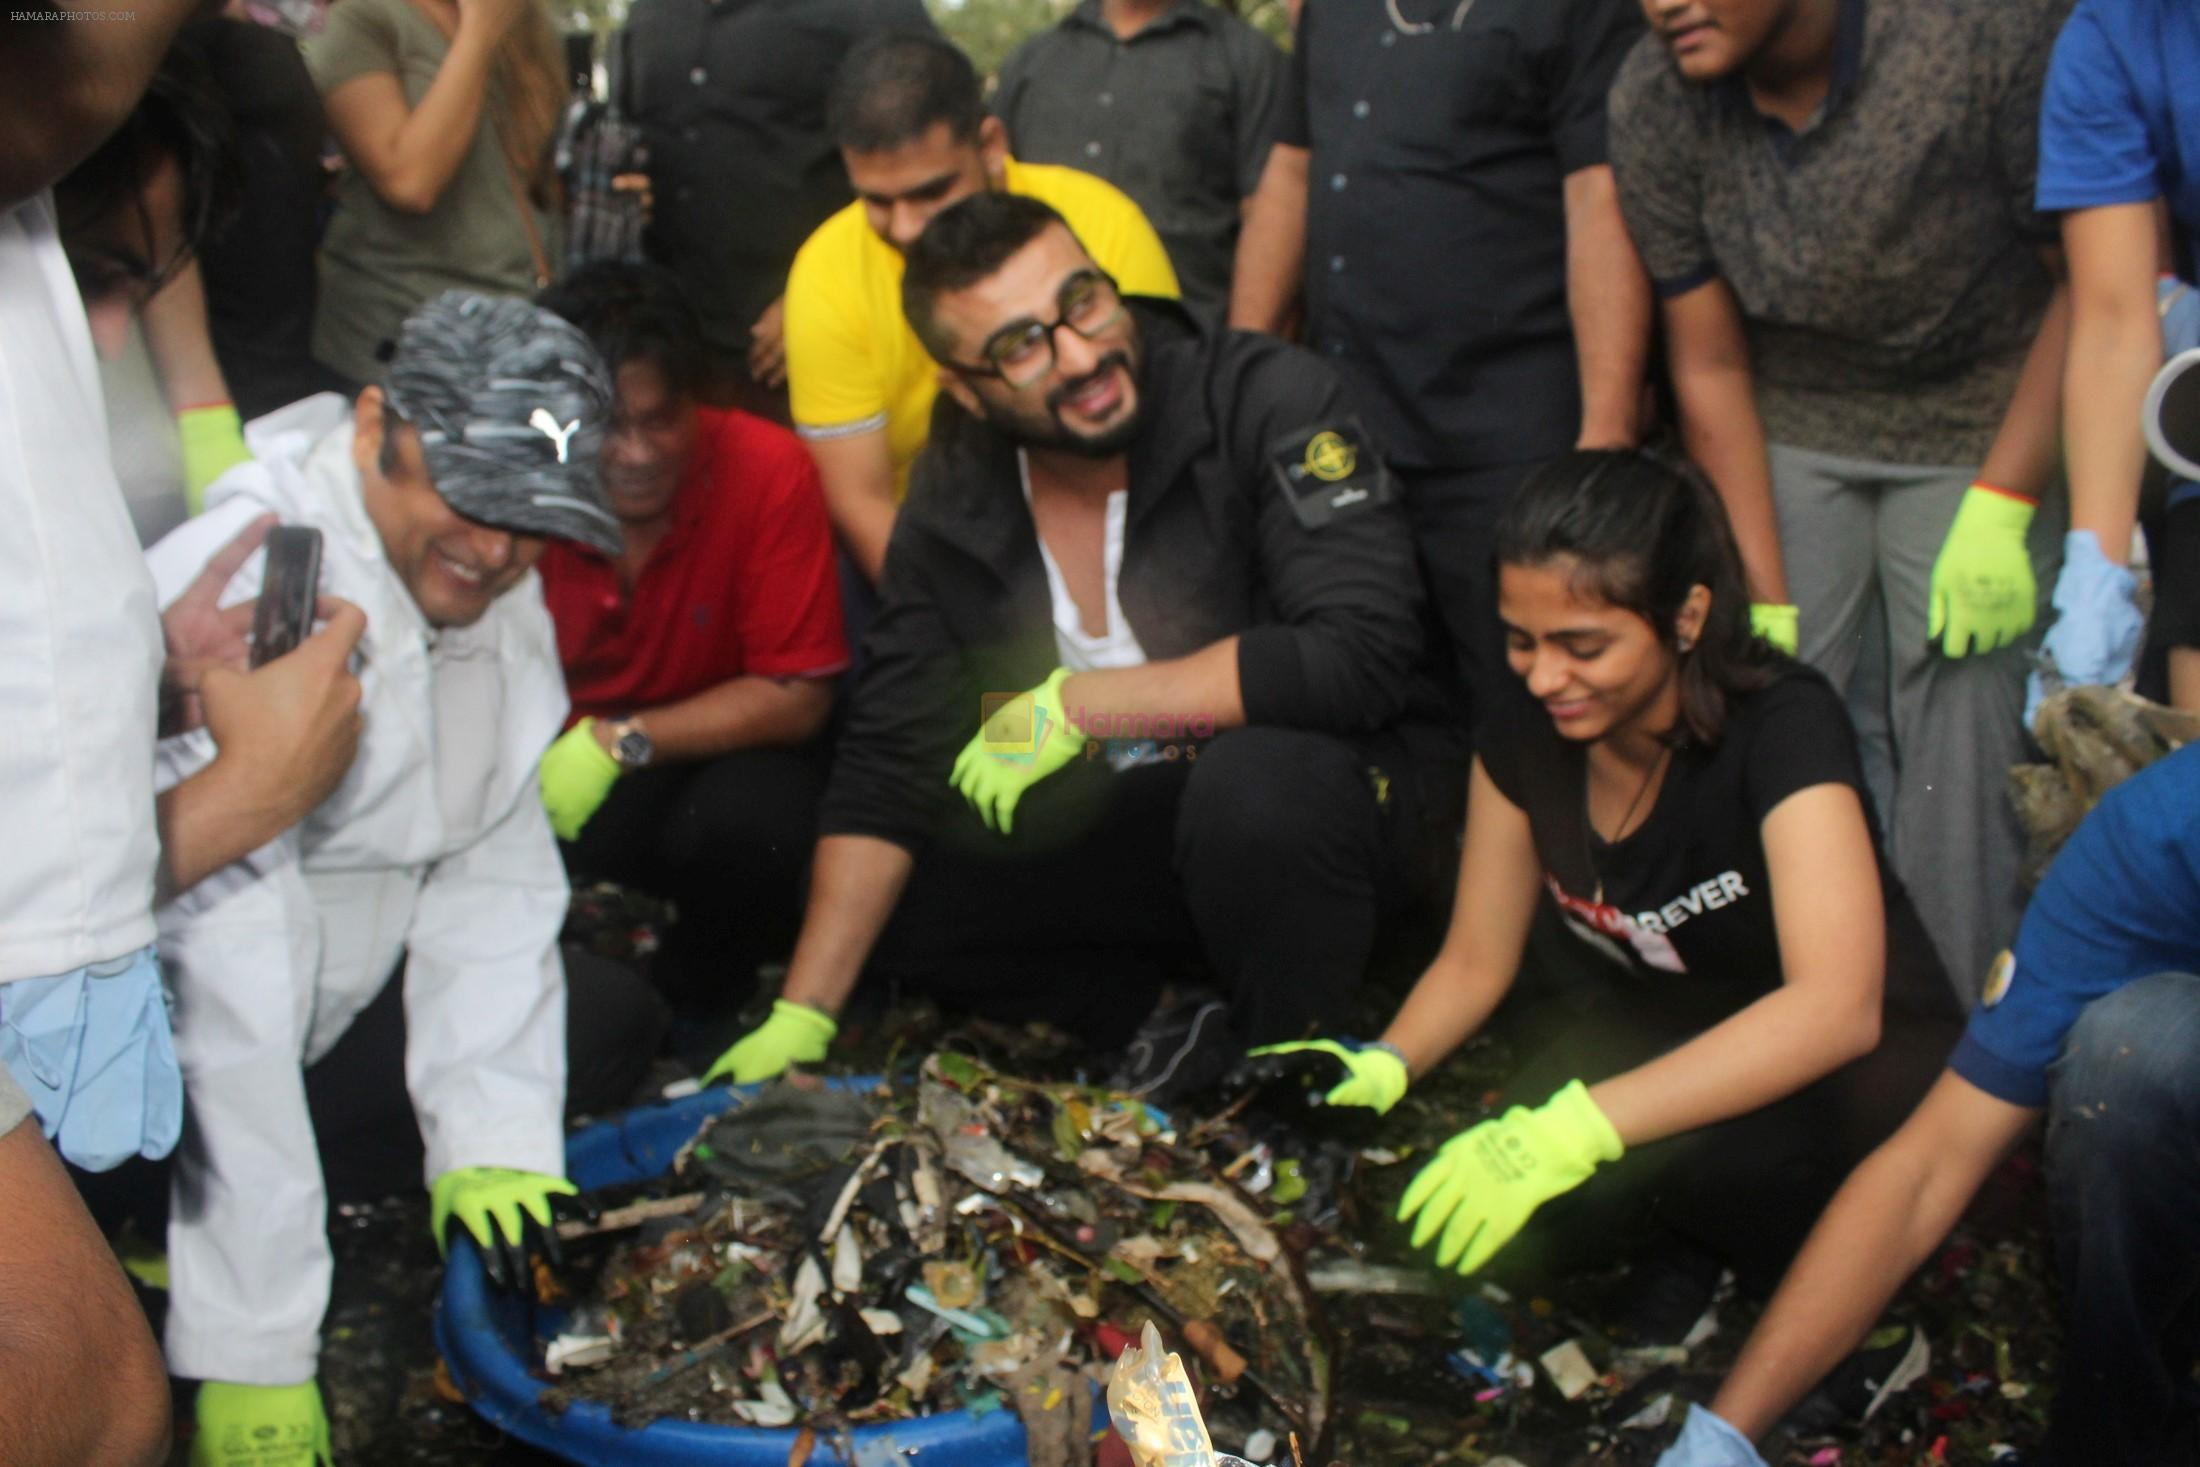 Arjun Kapoor will be flagging off the 2nd edition of the Beach clean up drive at Carter Road in Mumbai on Sunday on 4th Aug 2019